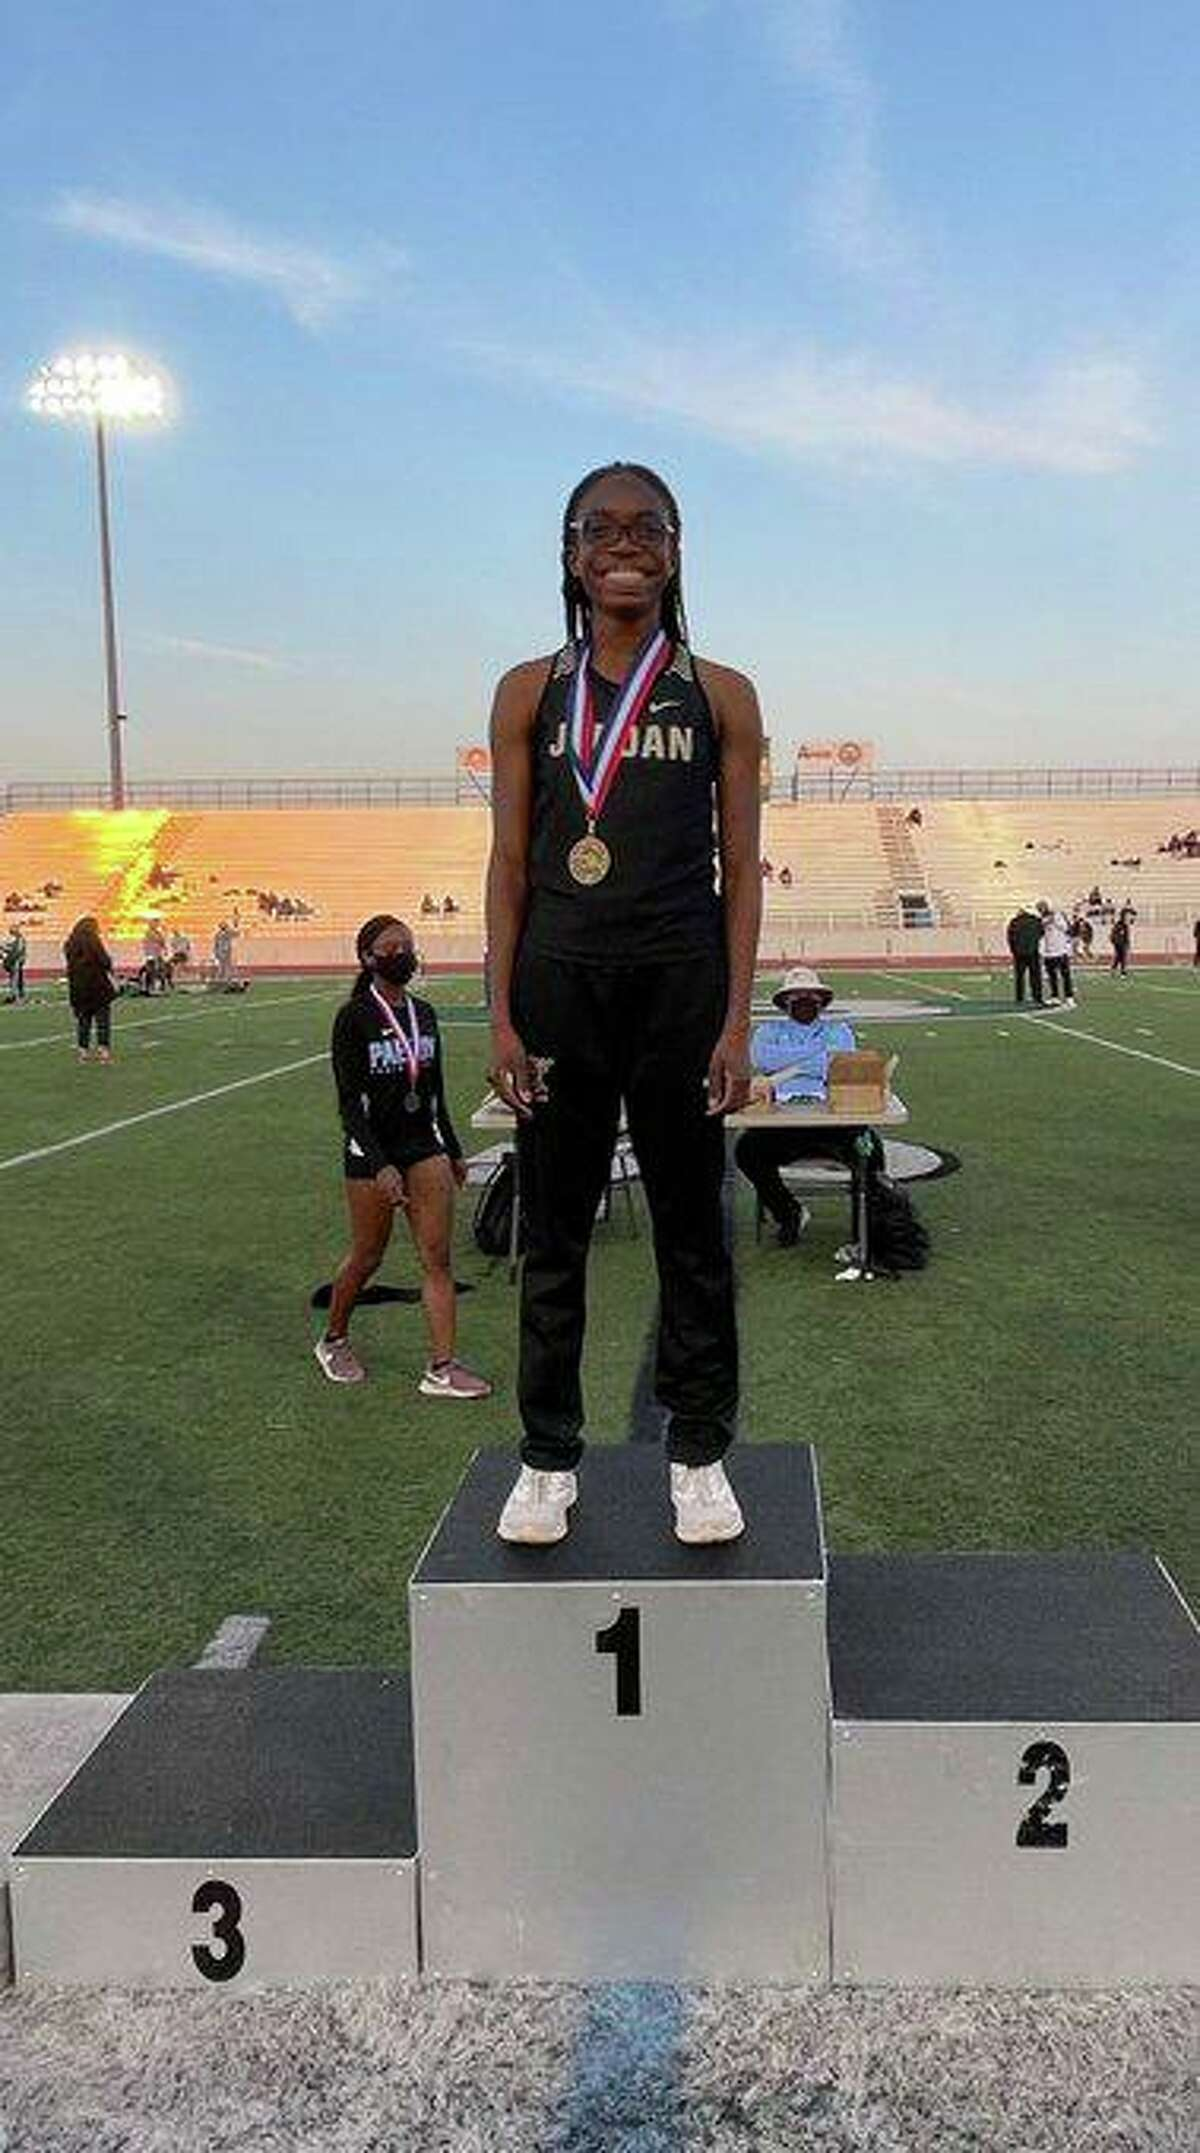 Jordan freshman Tiyan Ogbeide became the school's first district track and field champion with gold medals in the 400-meter dash (56.98) and 800-meter run (2:19.20) at the 19-5A meet.